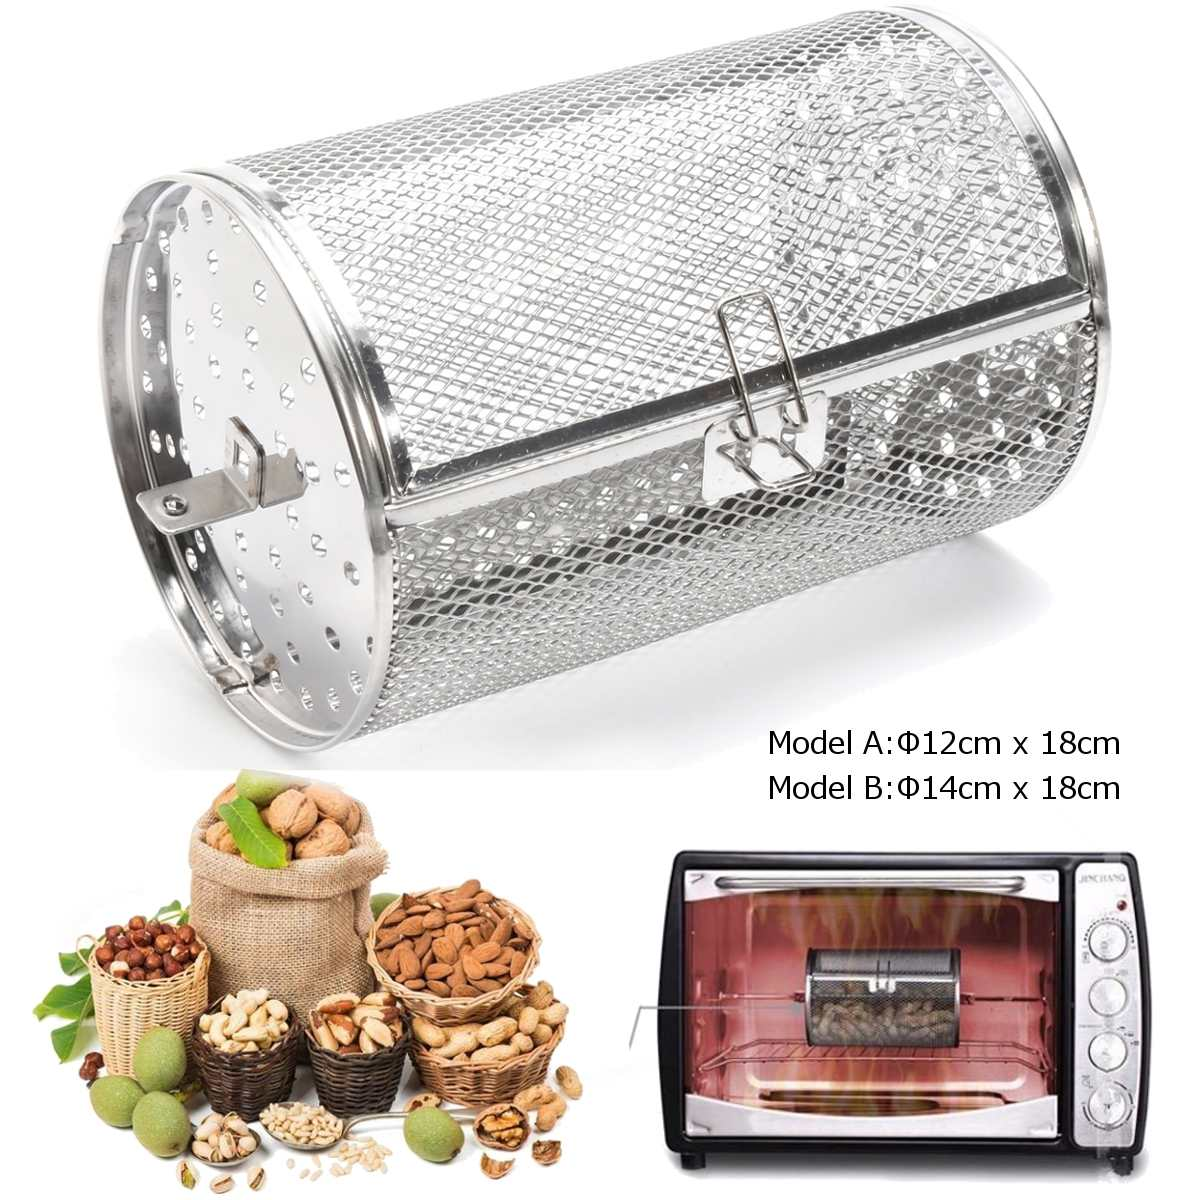 Stainless Steel Storage Basket Peanut Coffee Beans Oven Roaster Grilled Cage BBQ Grill Rotisserie Drum 14*18cm/12*18cm Kitchen(China)